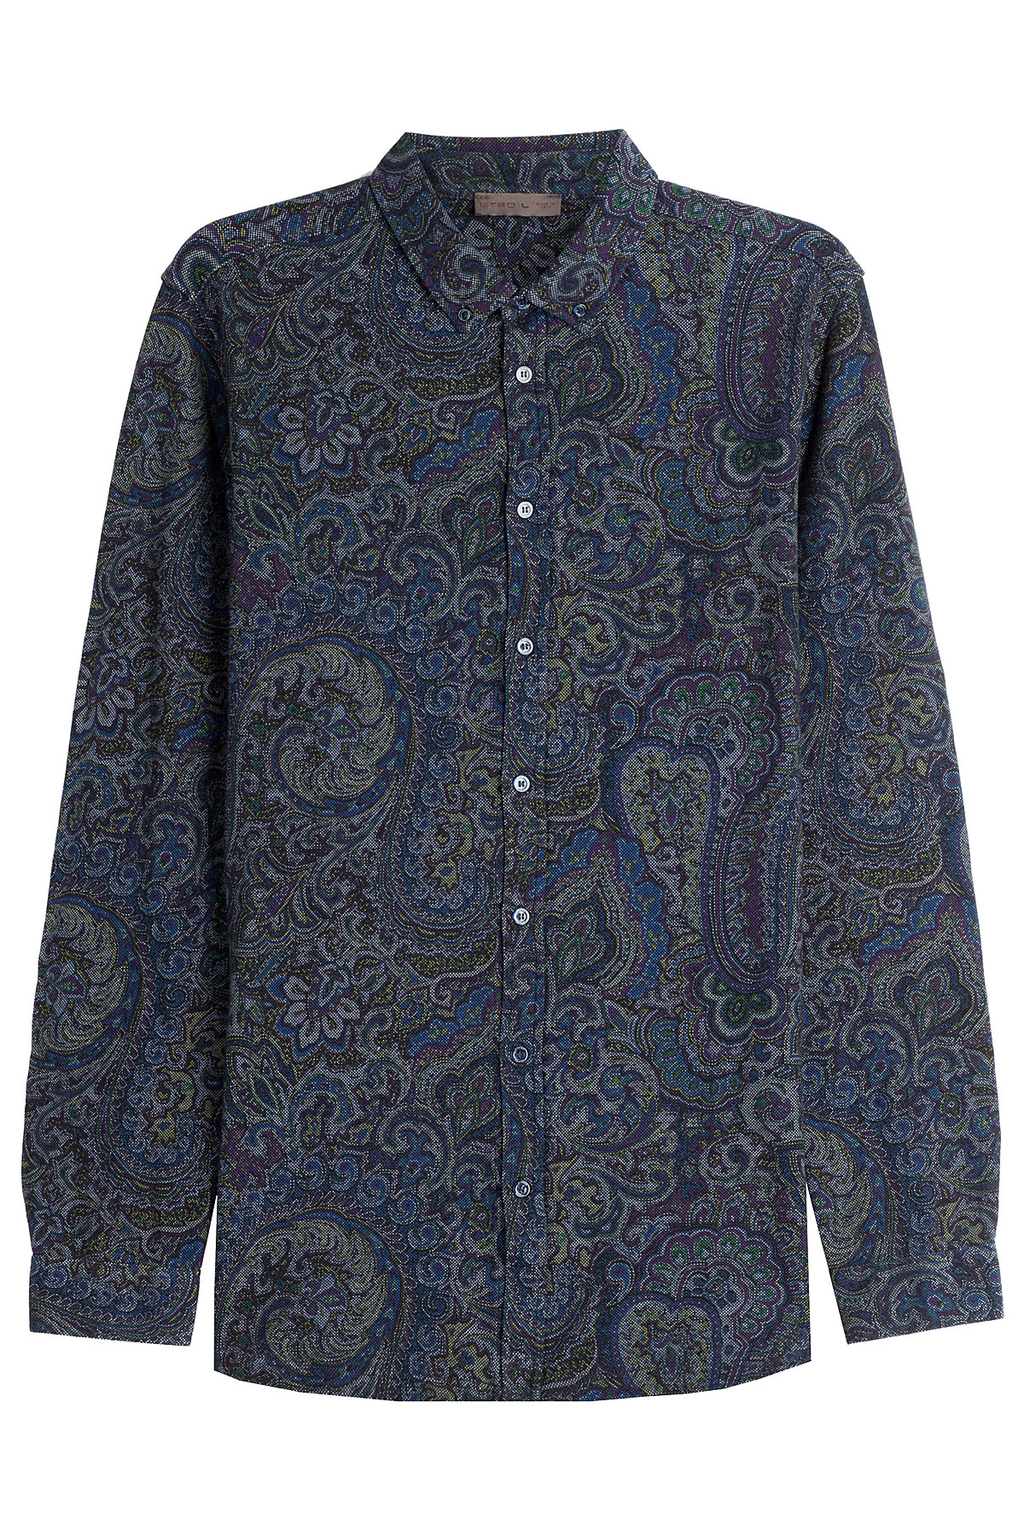 Printed Cotton Shirt - neckline: shirt collar/peter pan/zip with opening; style: shirt; pattern: paisley; predominant colour: navy; occasions: casual; length: standard; fibres: cotton - 100%; fit: body skimming; sleeve length: long sleeve; sleeve style: standard; pattern type: fabric; texture group: woven light midweight; season: a/w 2016; wardrobe: highlight